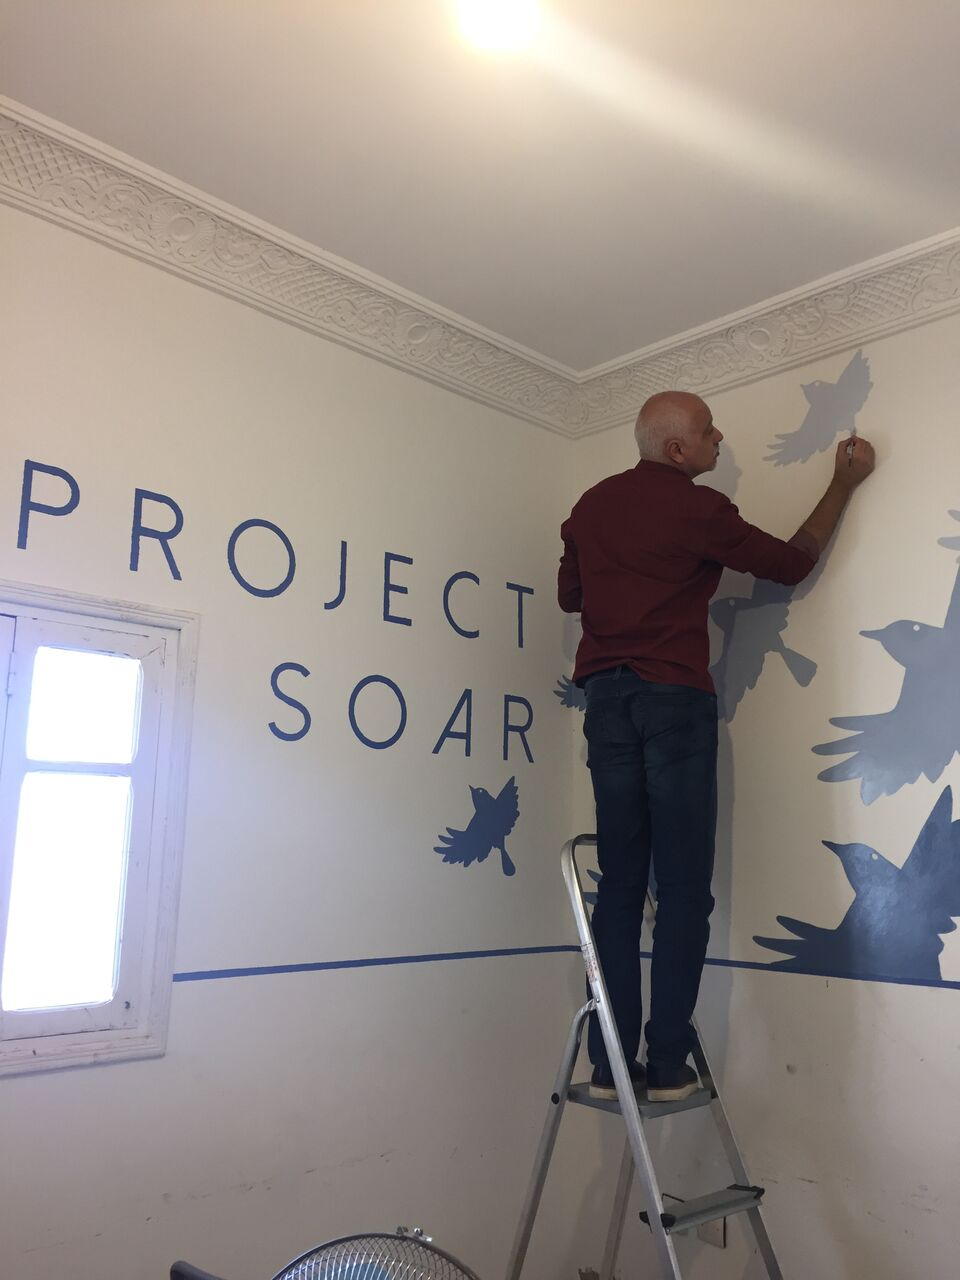 painting | Project Soar | give back | EAT.PRAY.MOVE Yoga Retreats | Marrakesh, Morocco